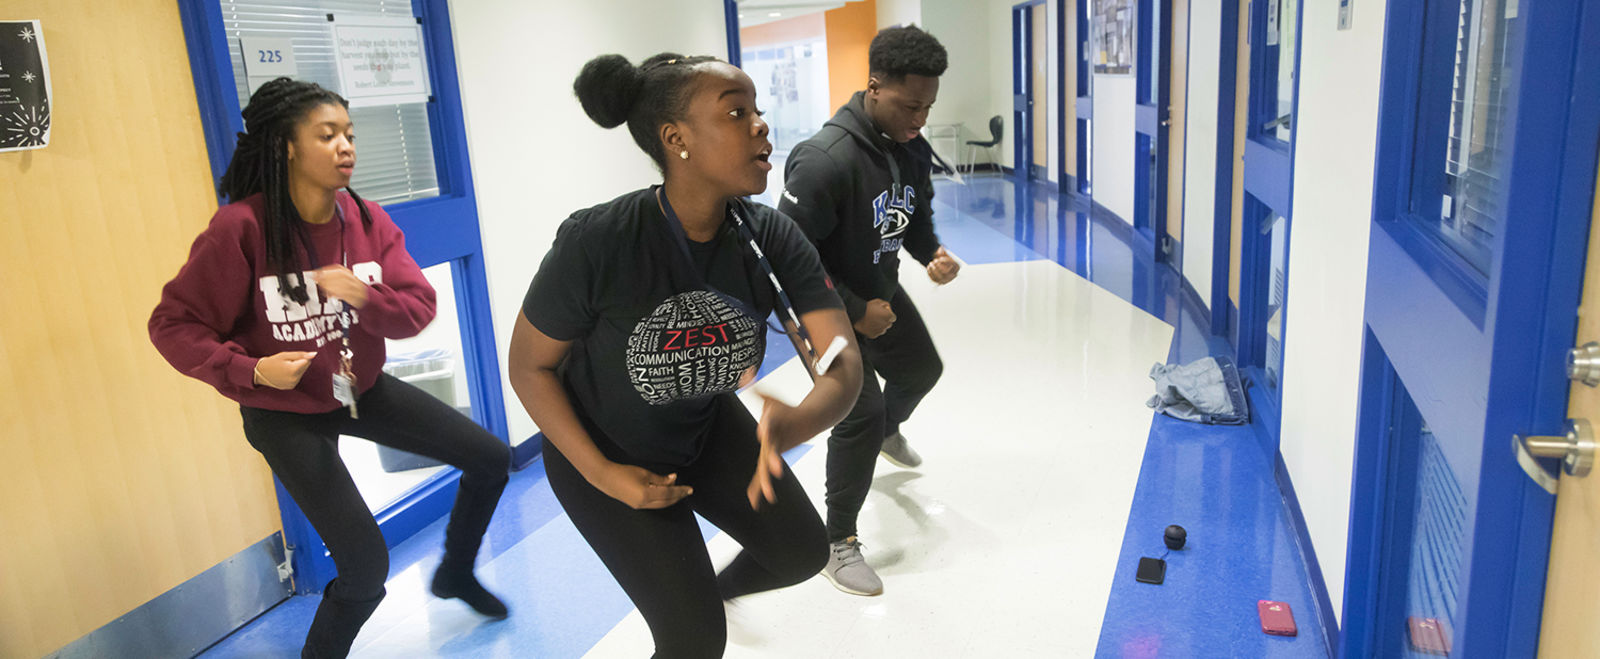 Three students practice a dance routine in their high school hallway.